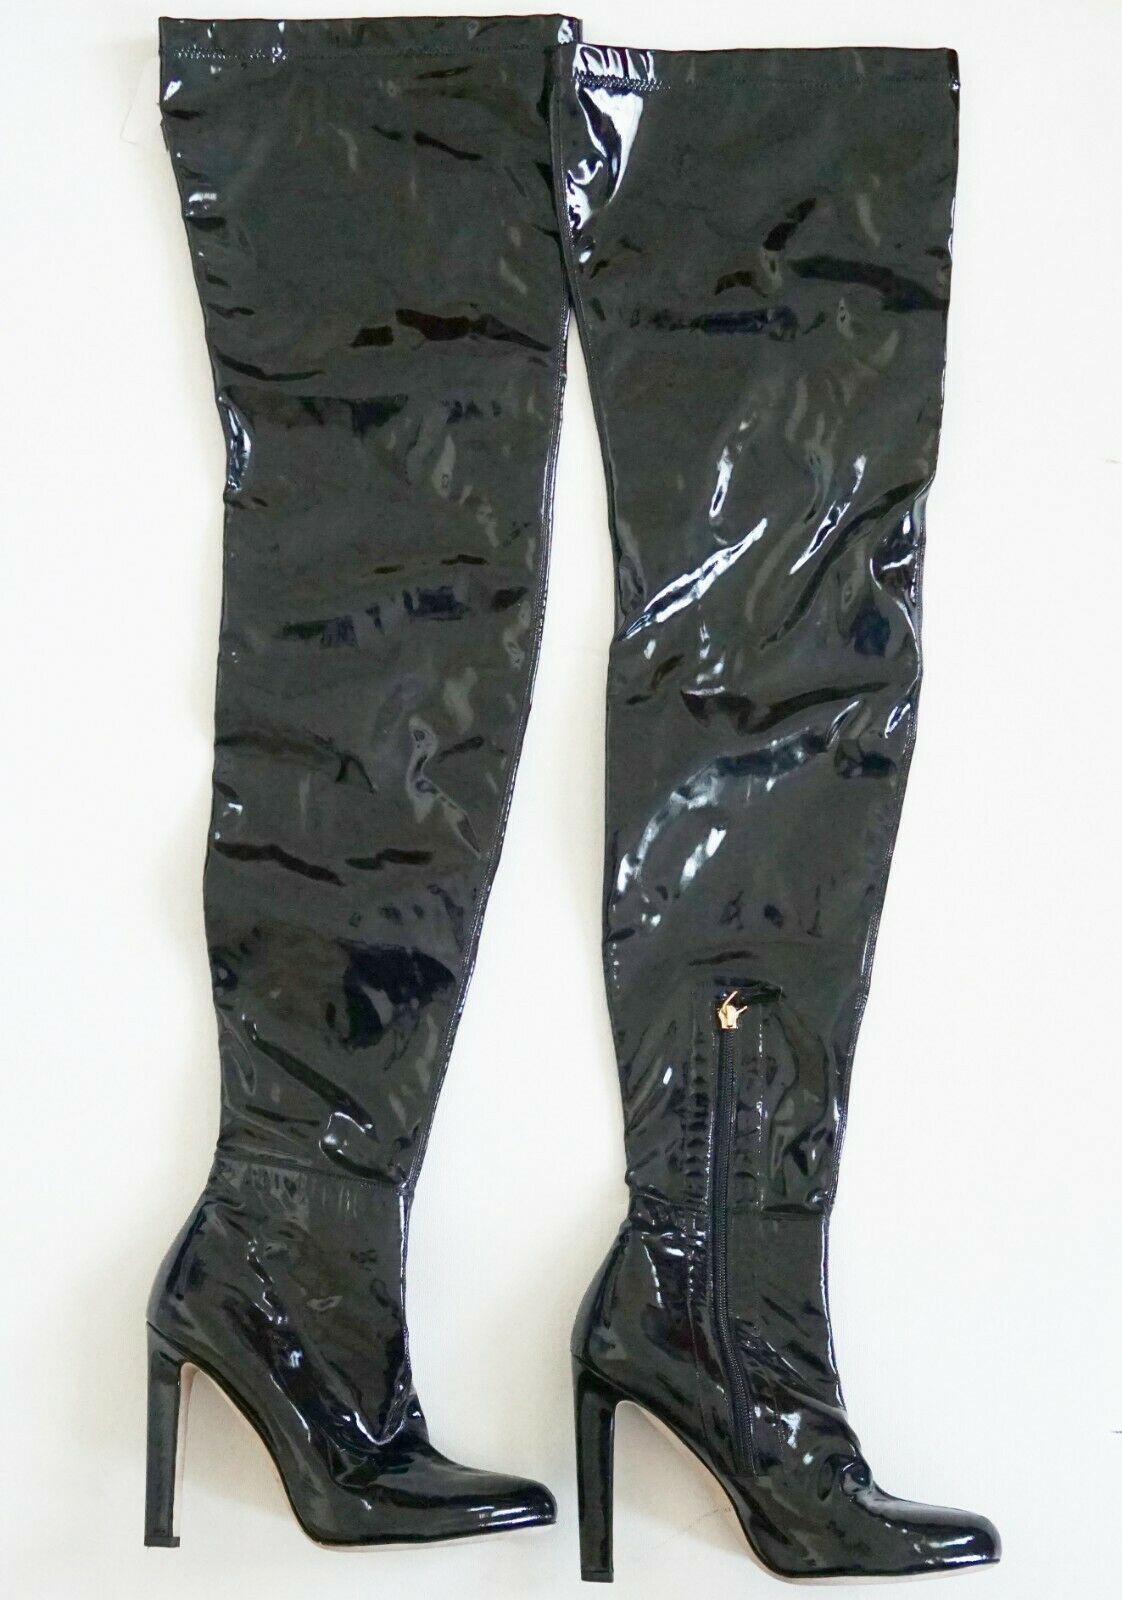 1300 BRIAN ATWOOD MADELINE Black PATENT LEATHER OVER THE KNEE Boots 36 US-6